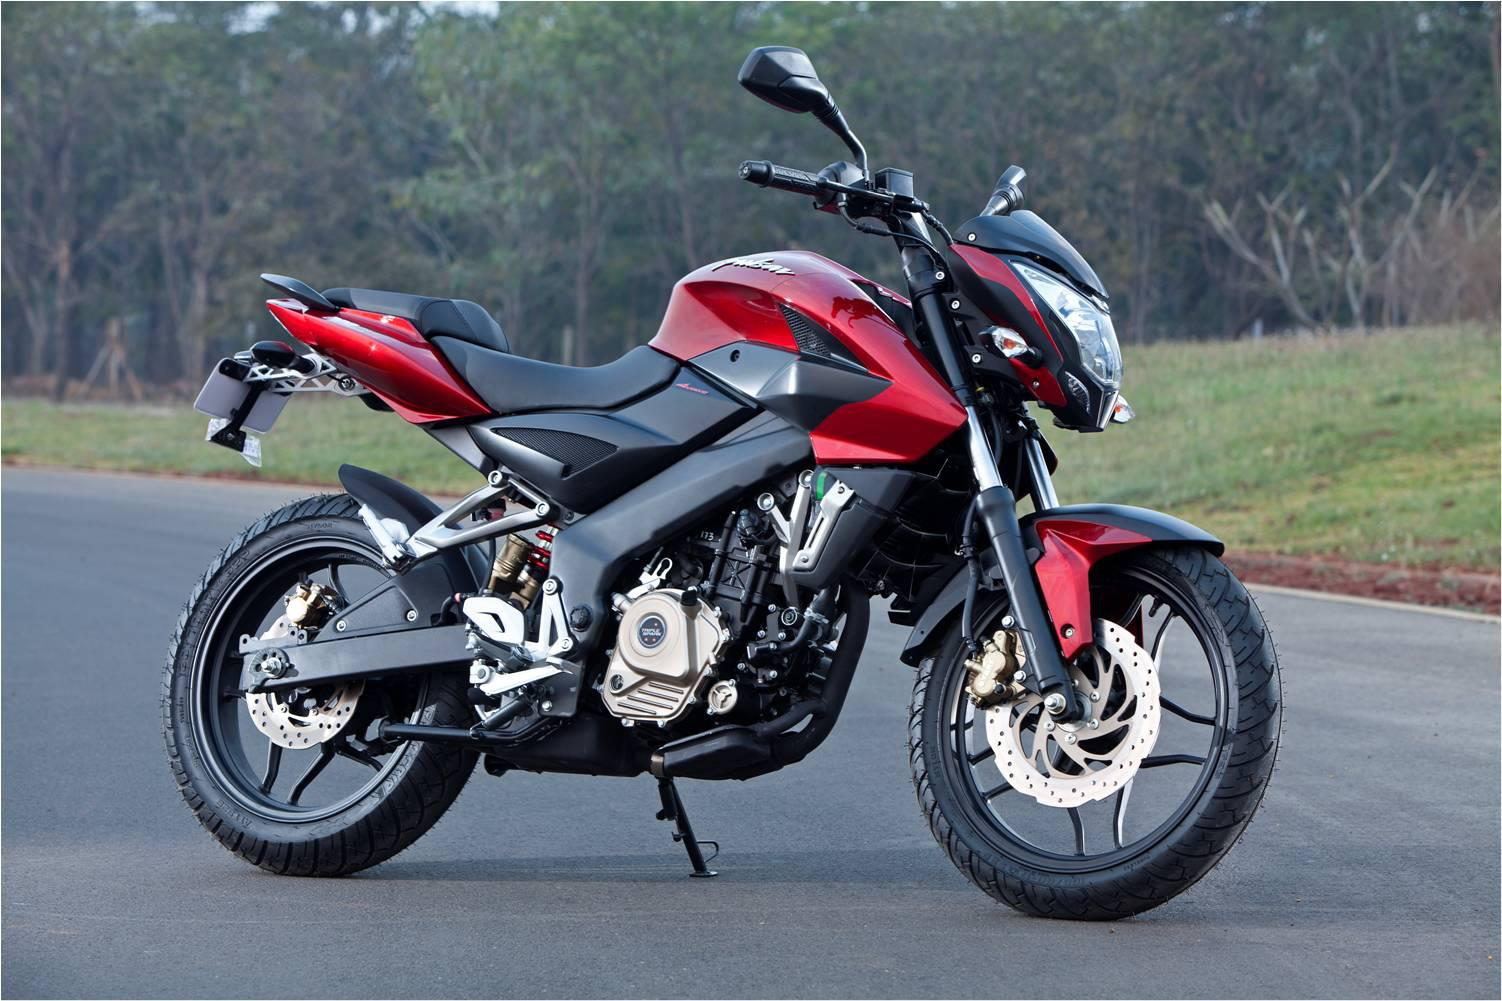 Pulsar 200NS with triple spark technology